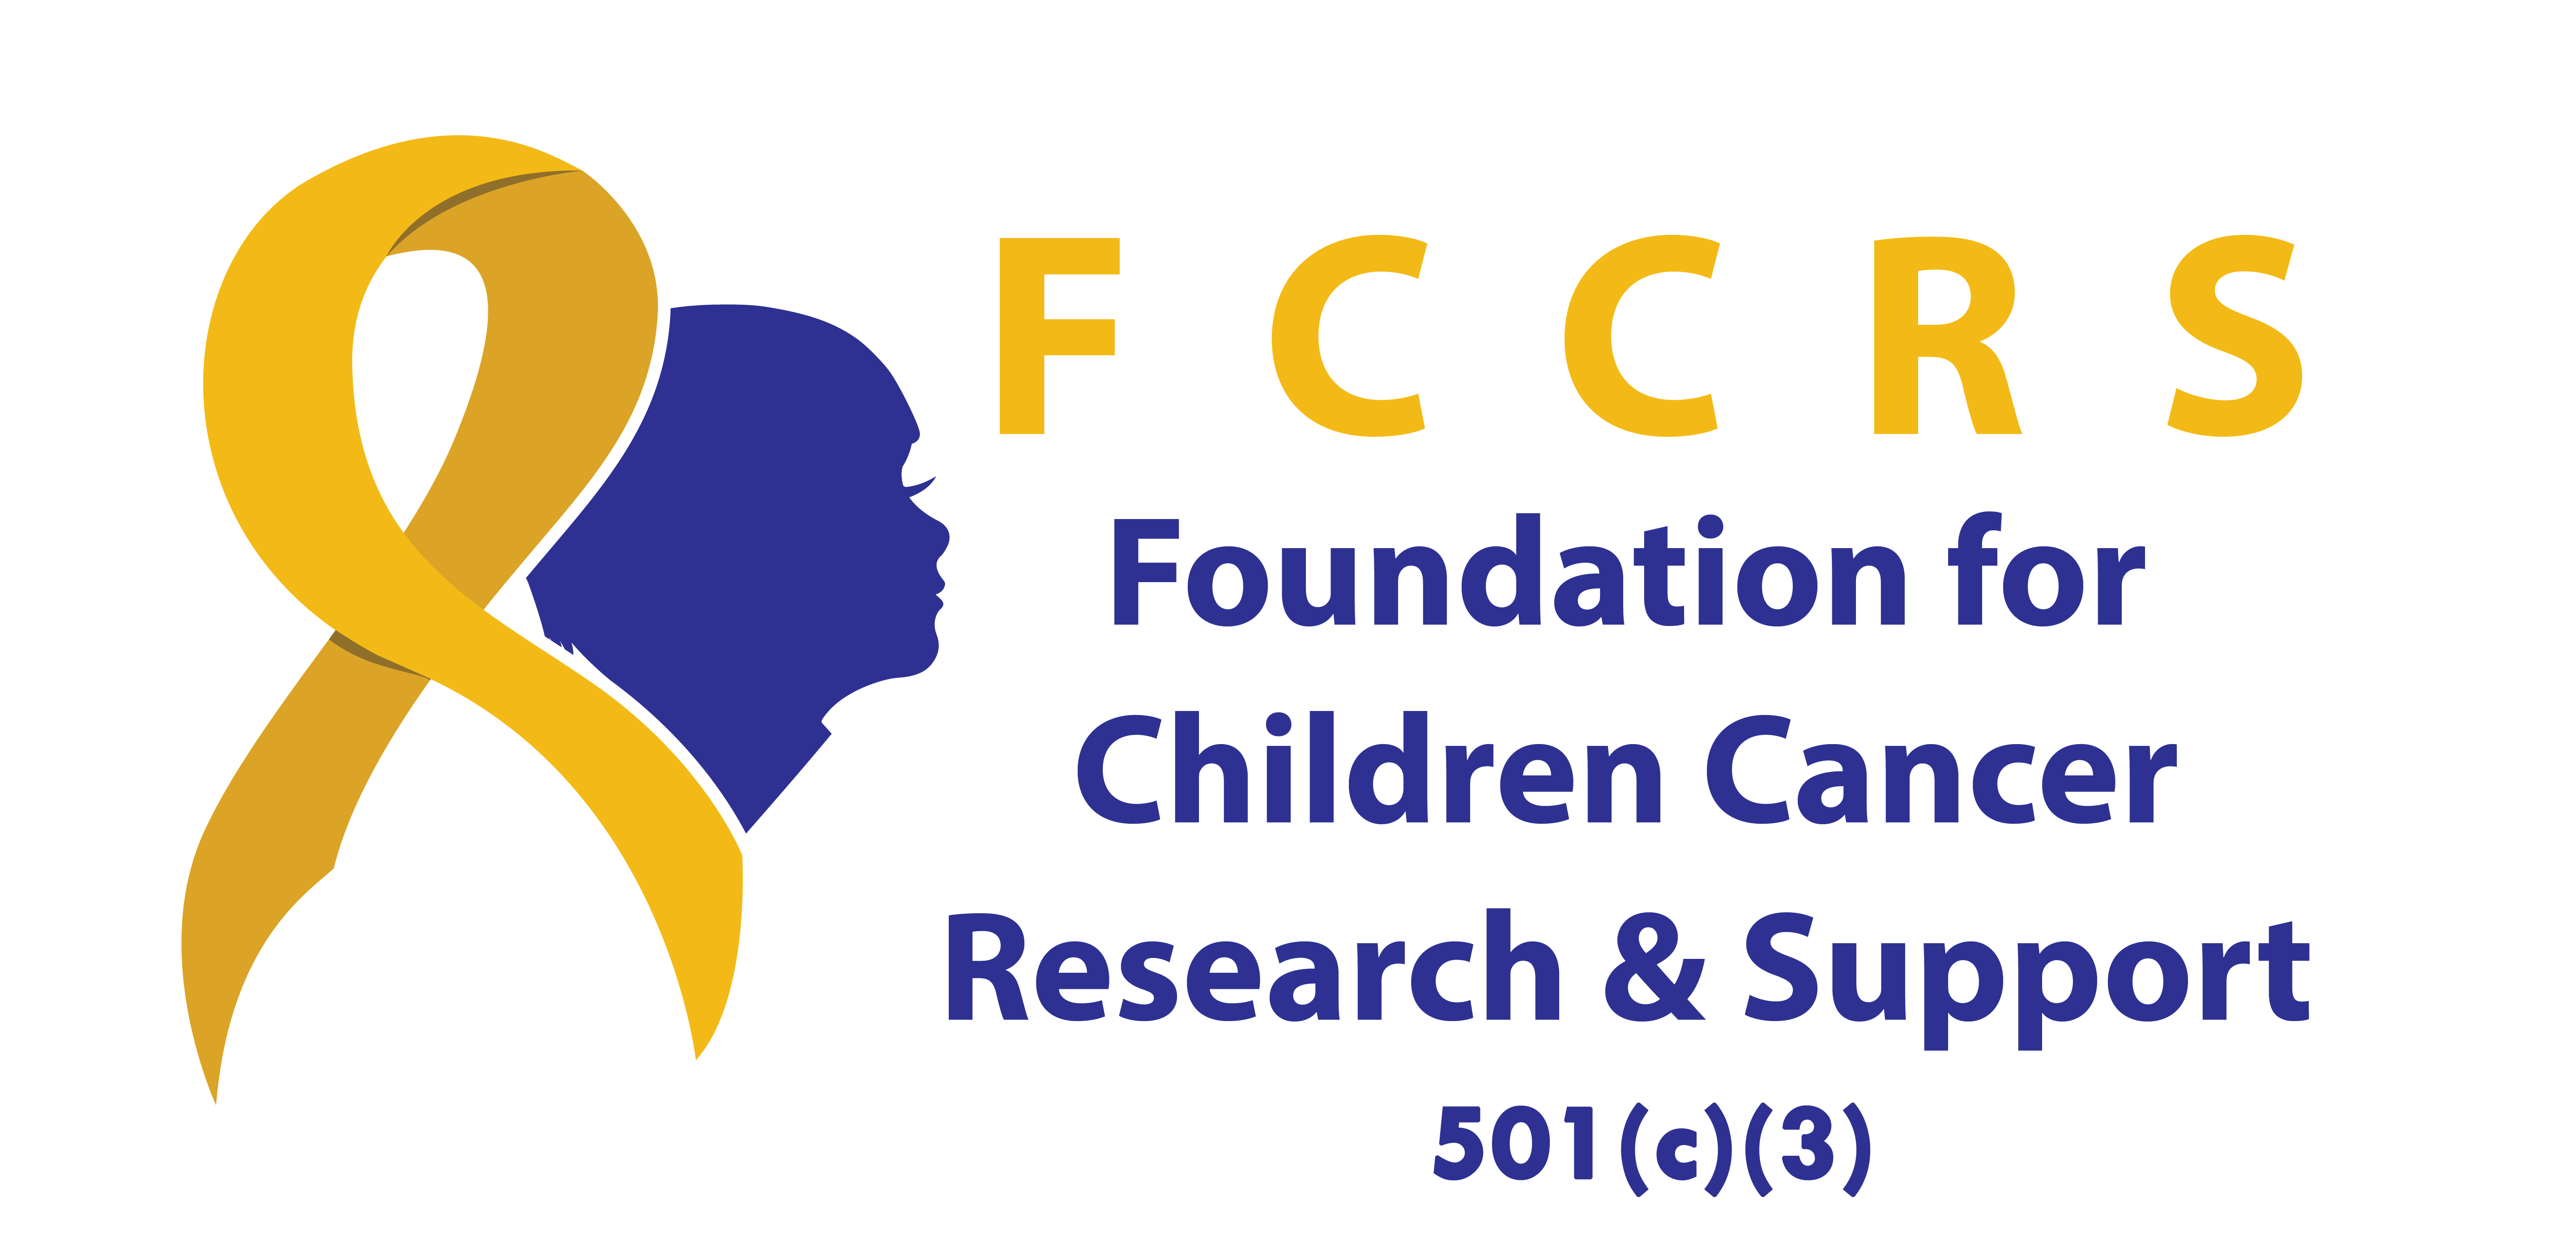 Foundation for Children Cancer Research & Support